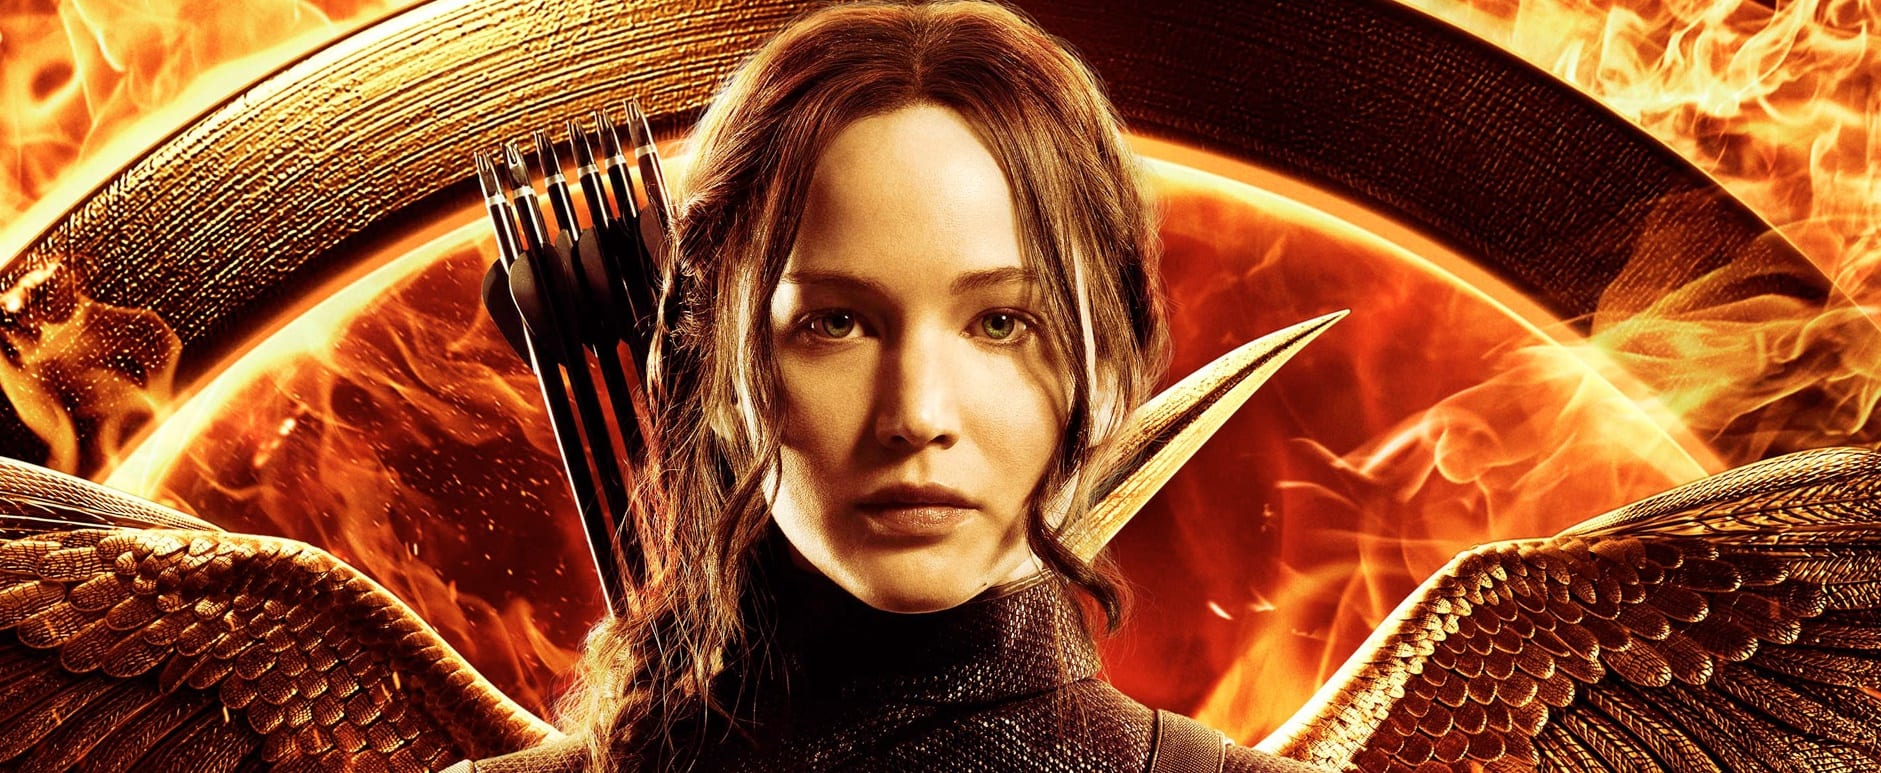 the-hunger-games-mockingjay-part-1-poster-jennifer-lawrence-banner